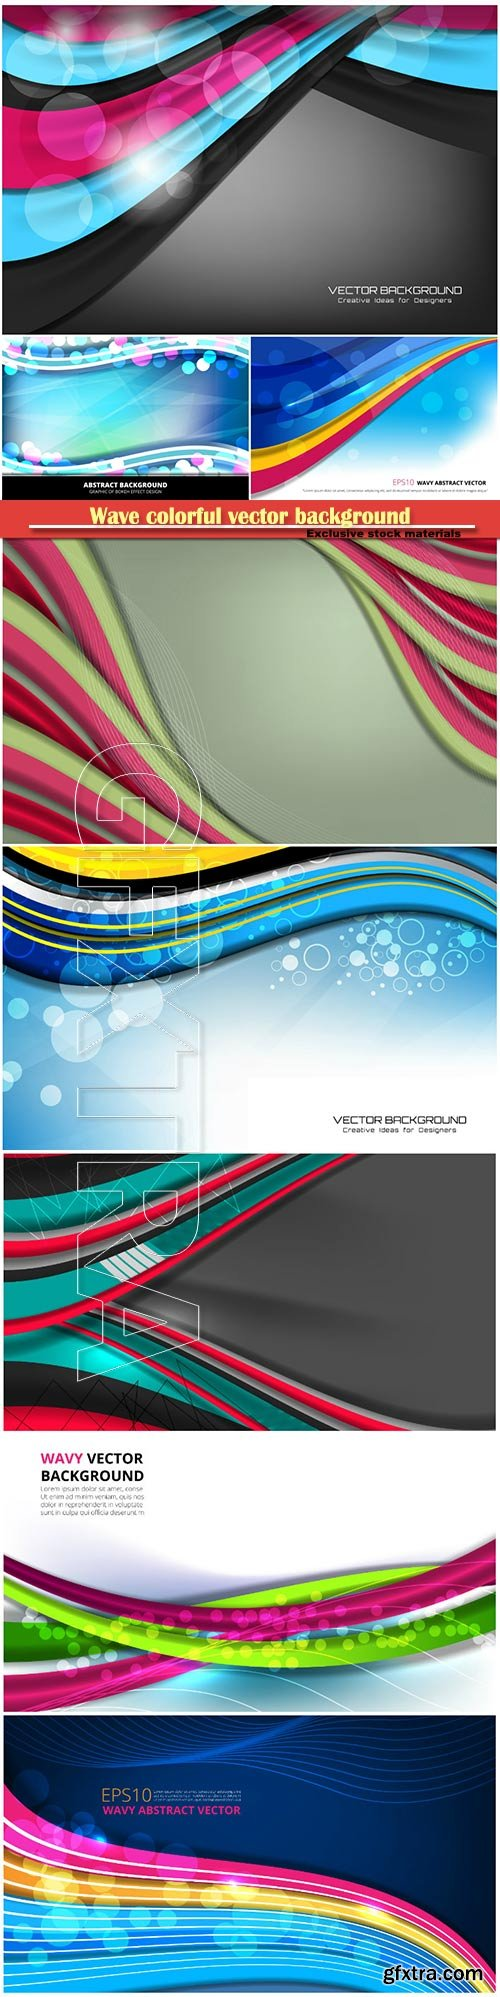 Wave colorful vector background